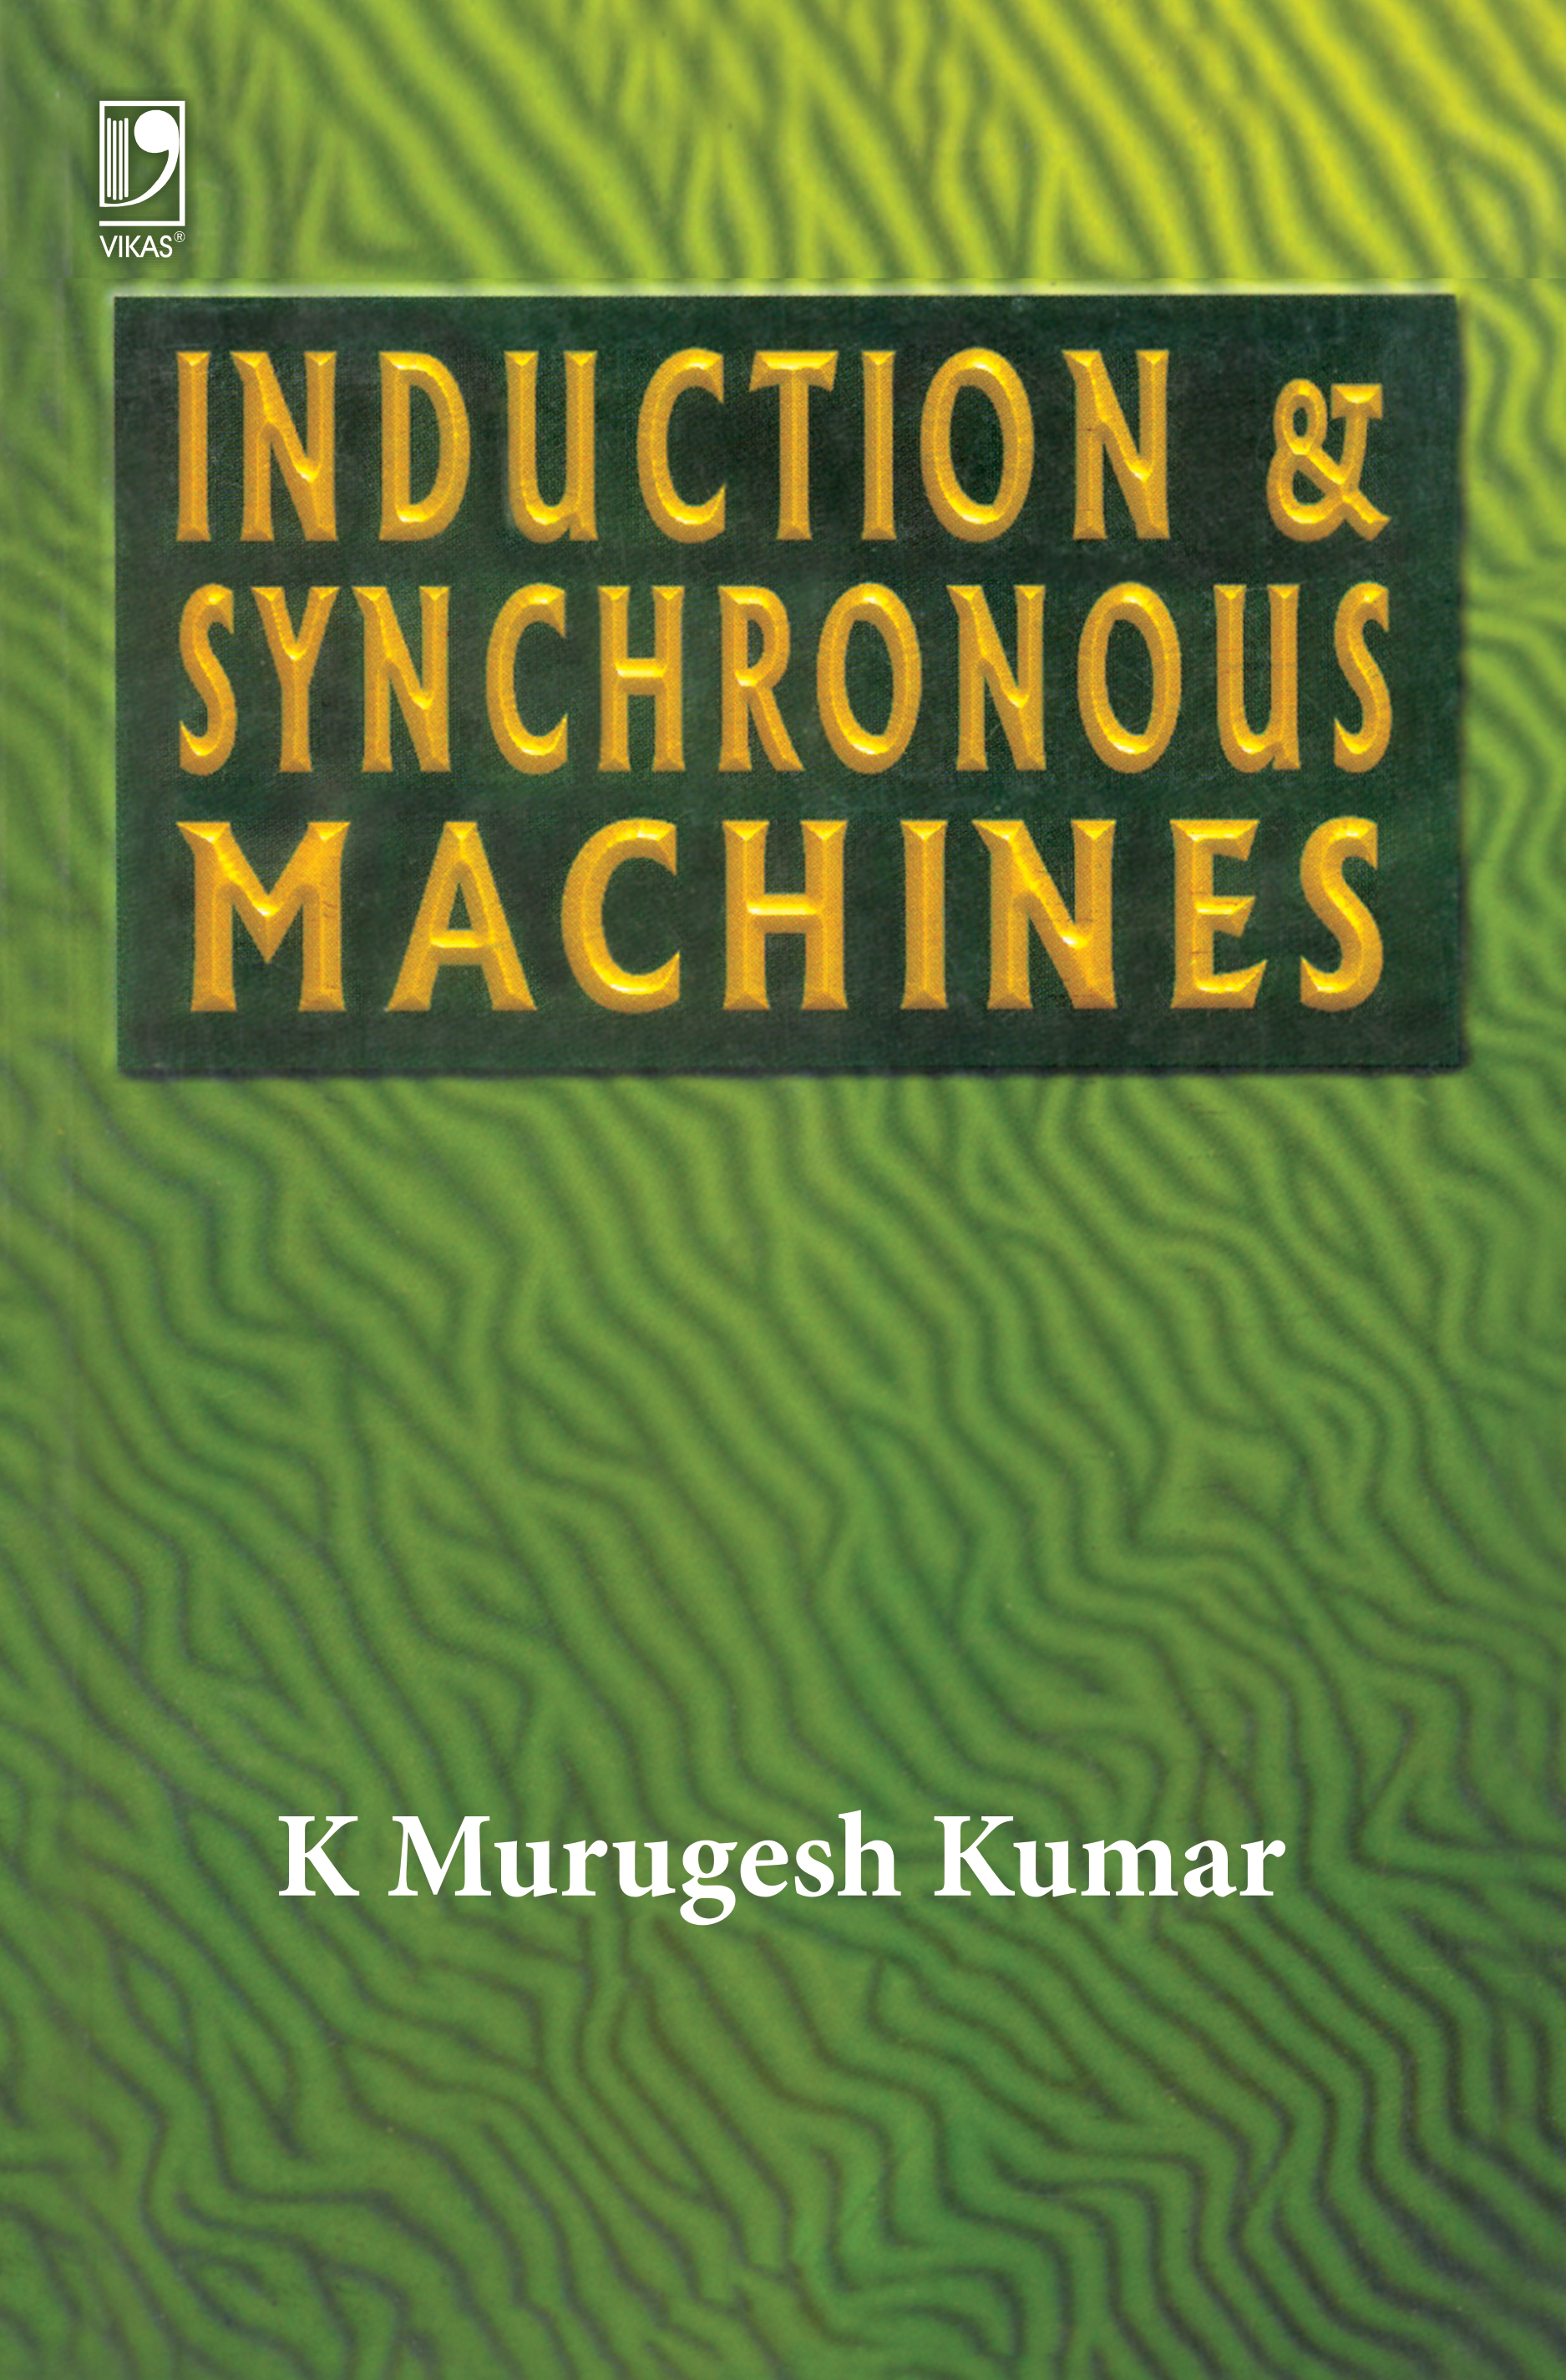 Induction and Synchronous Machines